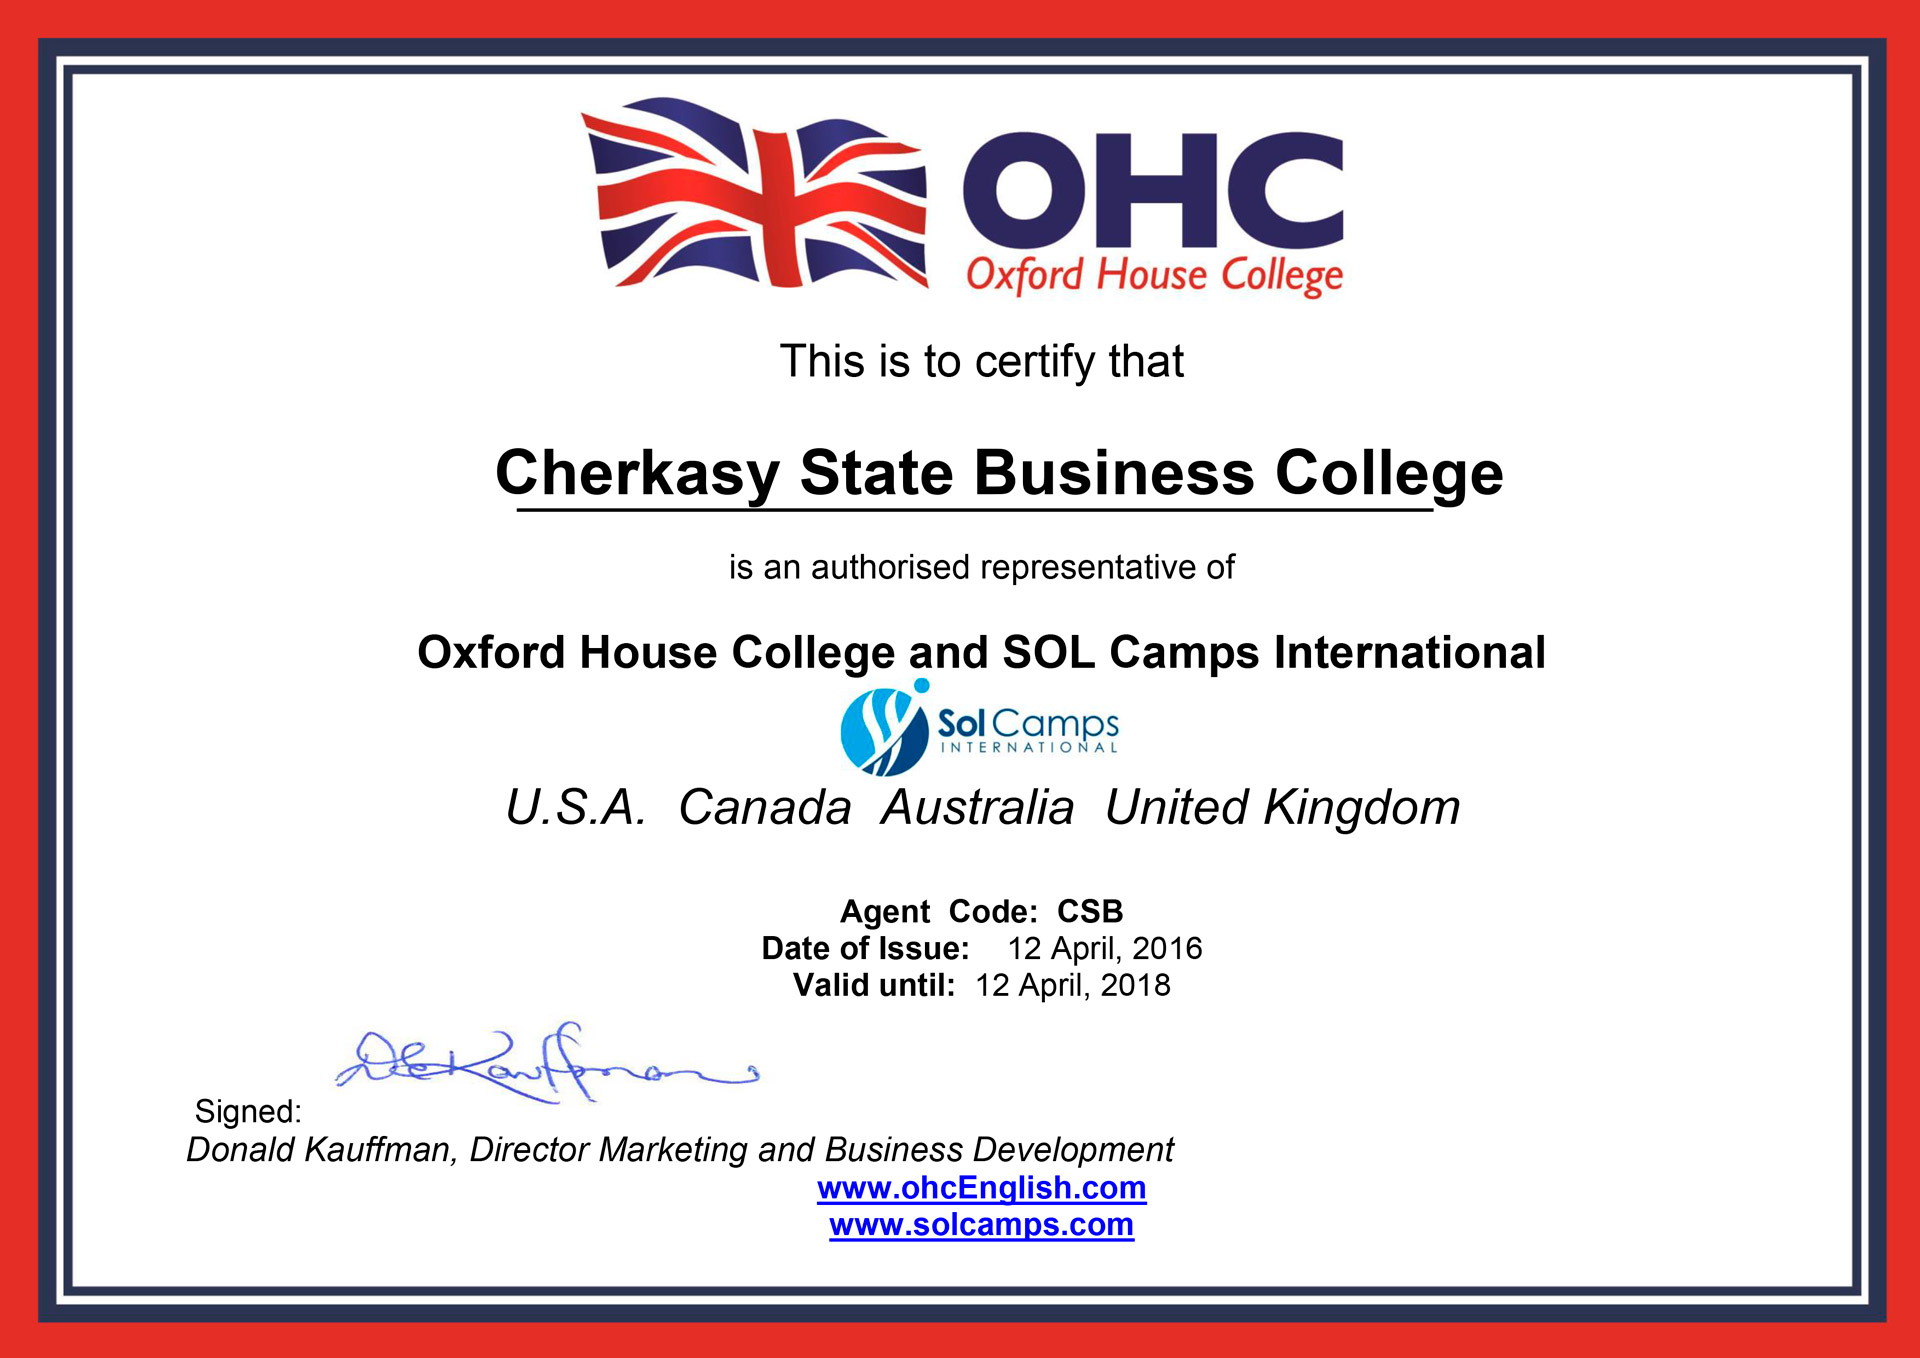 Угода про співпрацю з Oxford House College and SOL Camps International